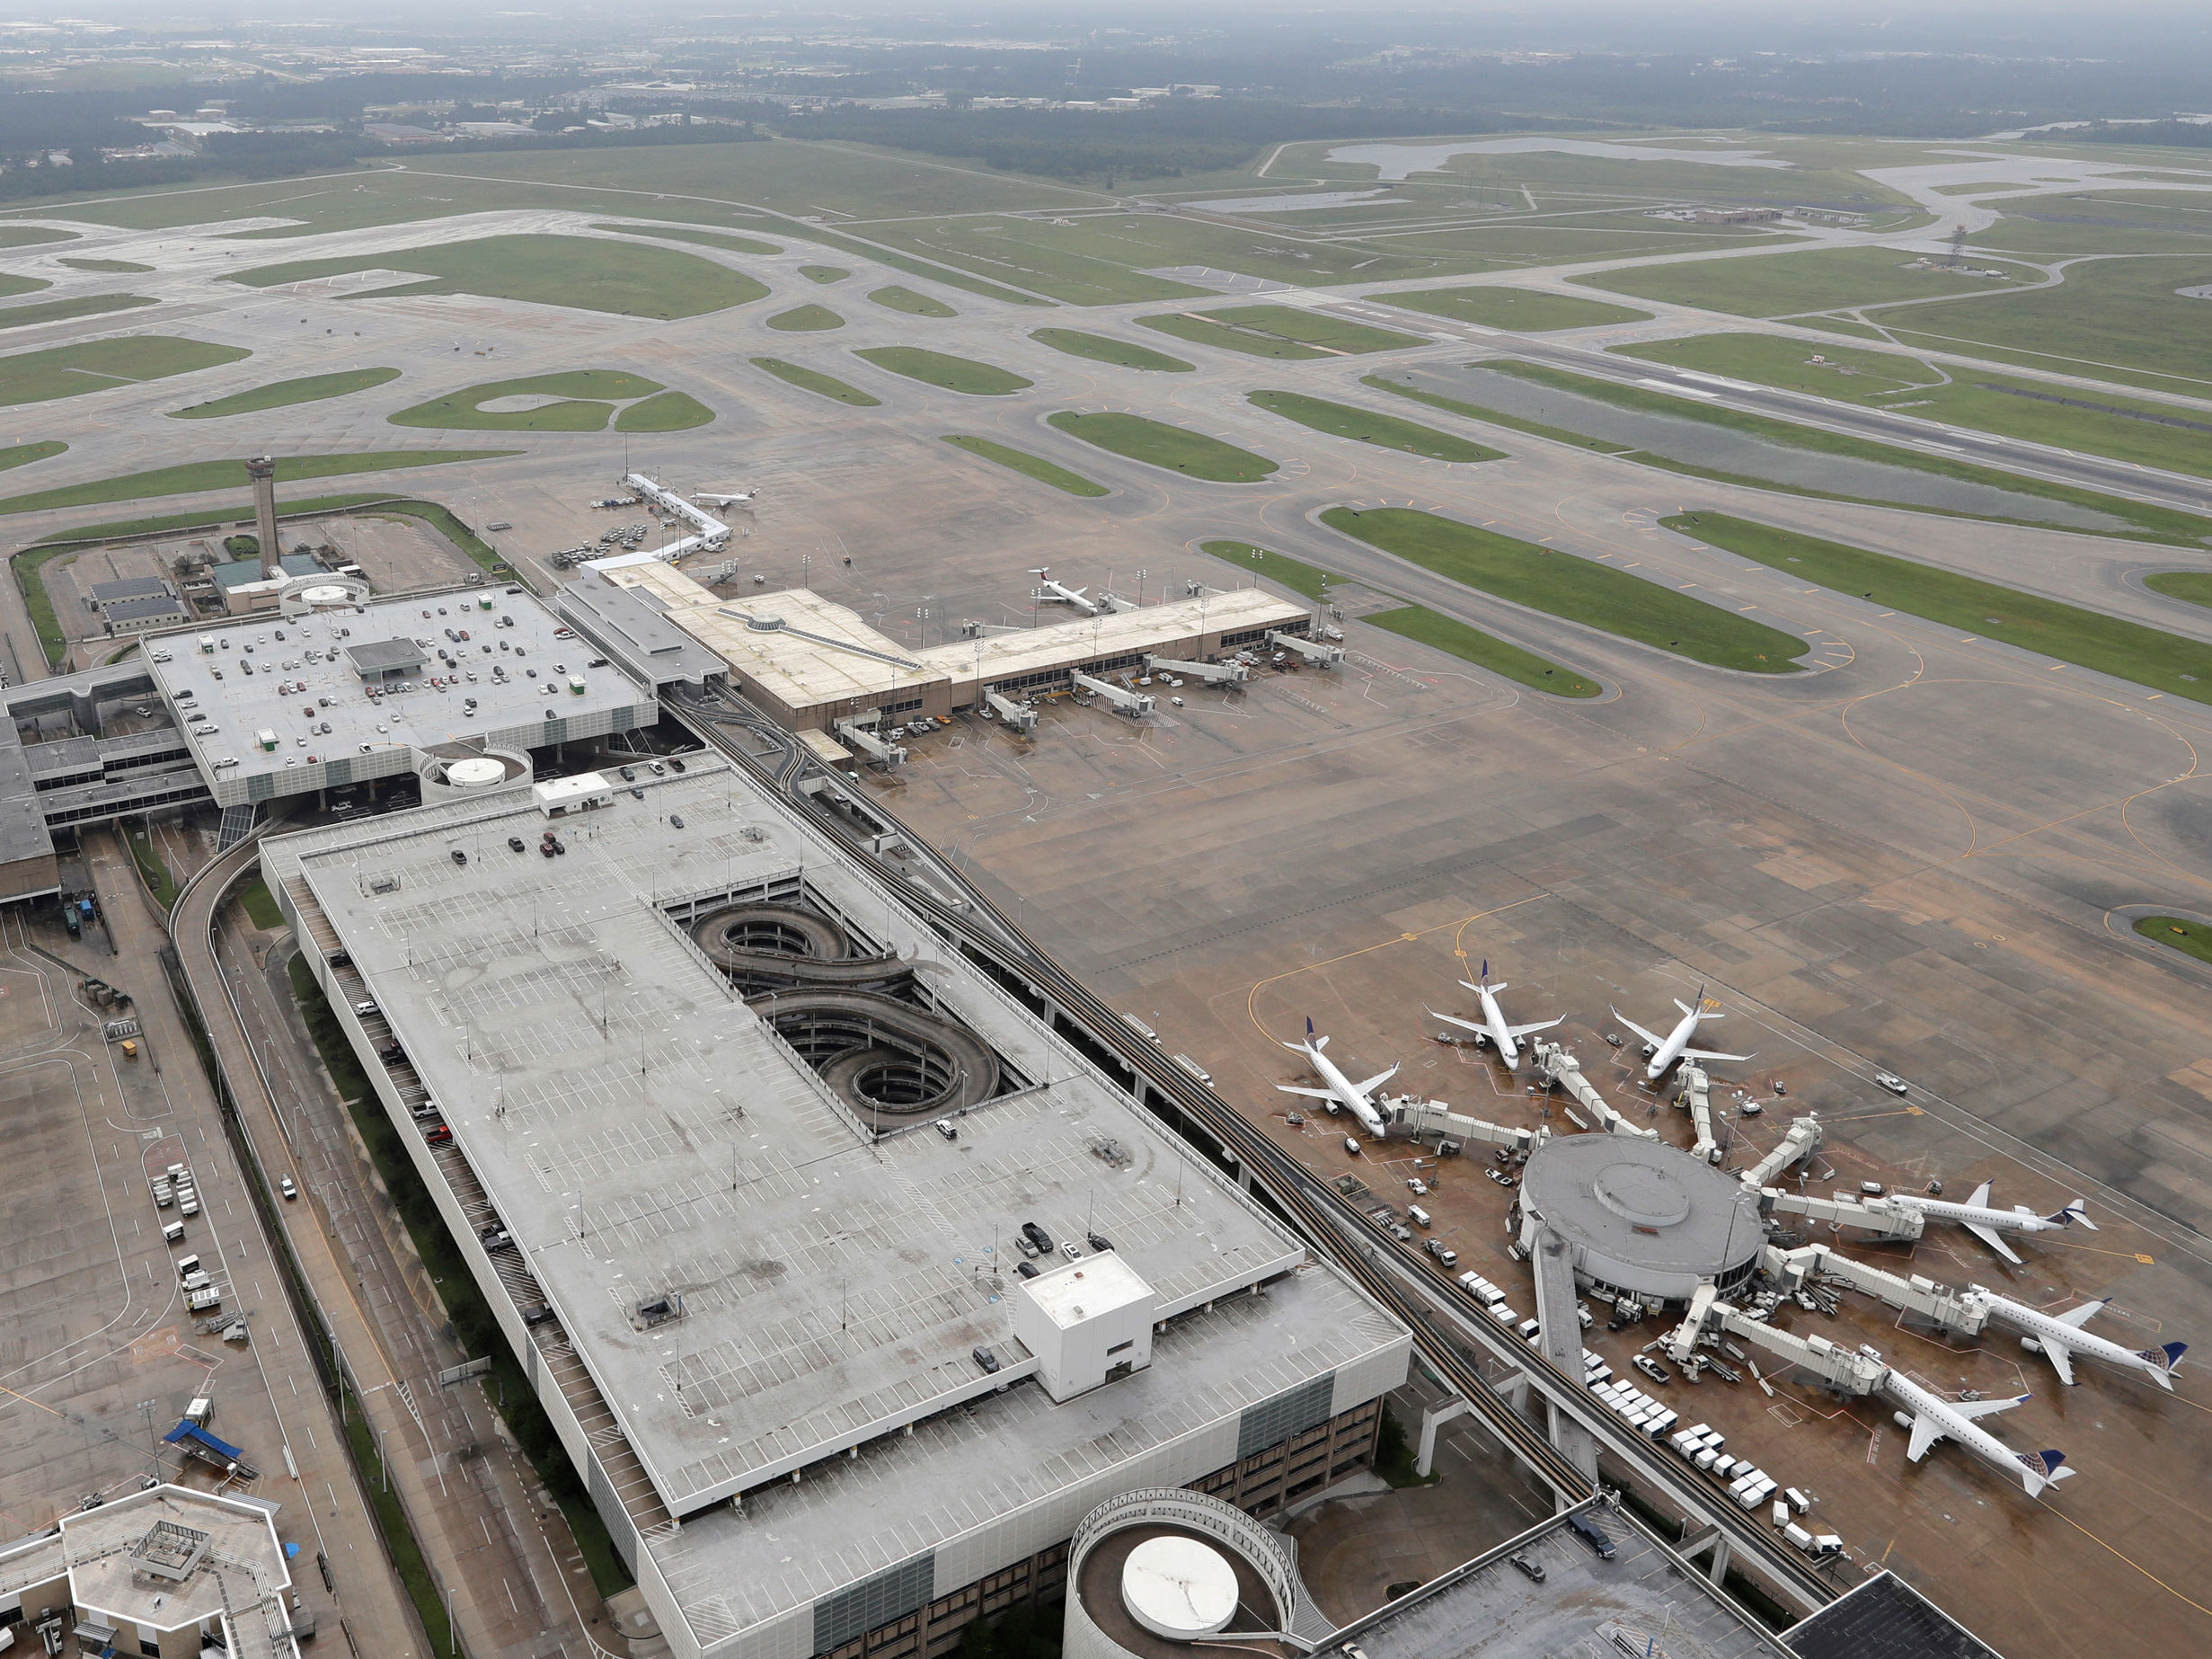 Flight operations cease at Houston airports until further notice, officials say